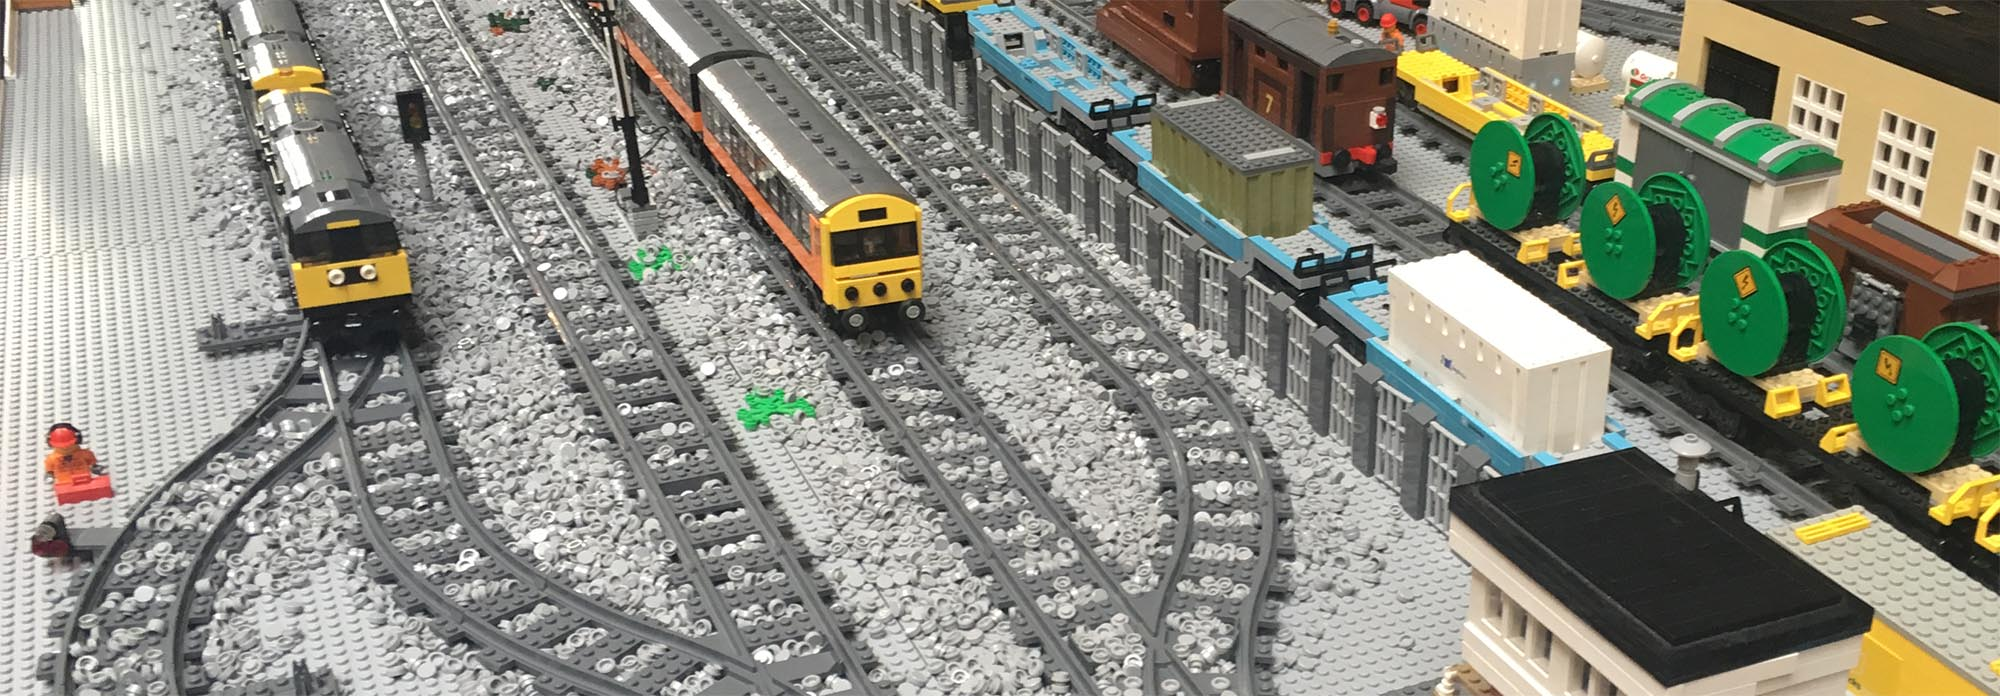 LEGO locomotive models by LNUR members